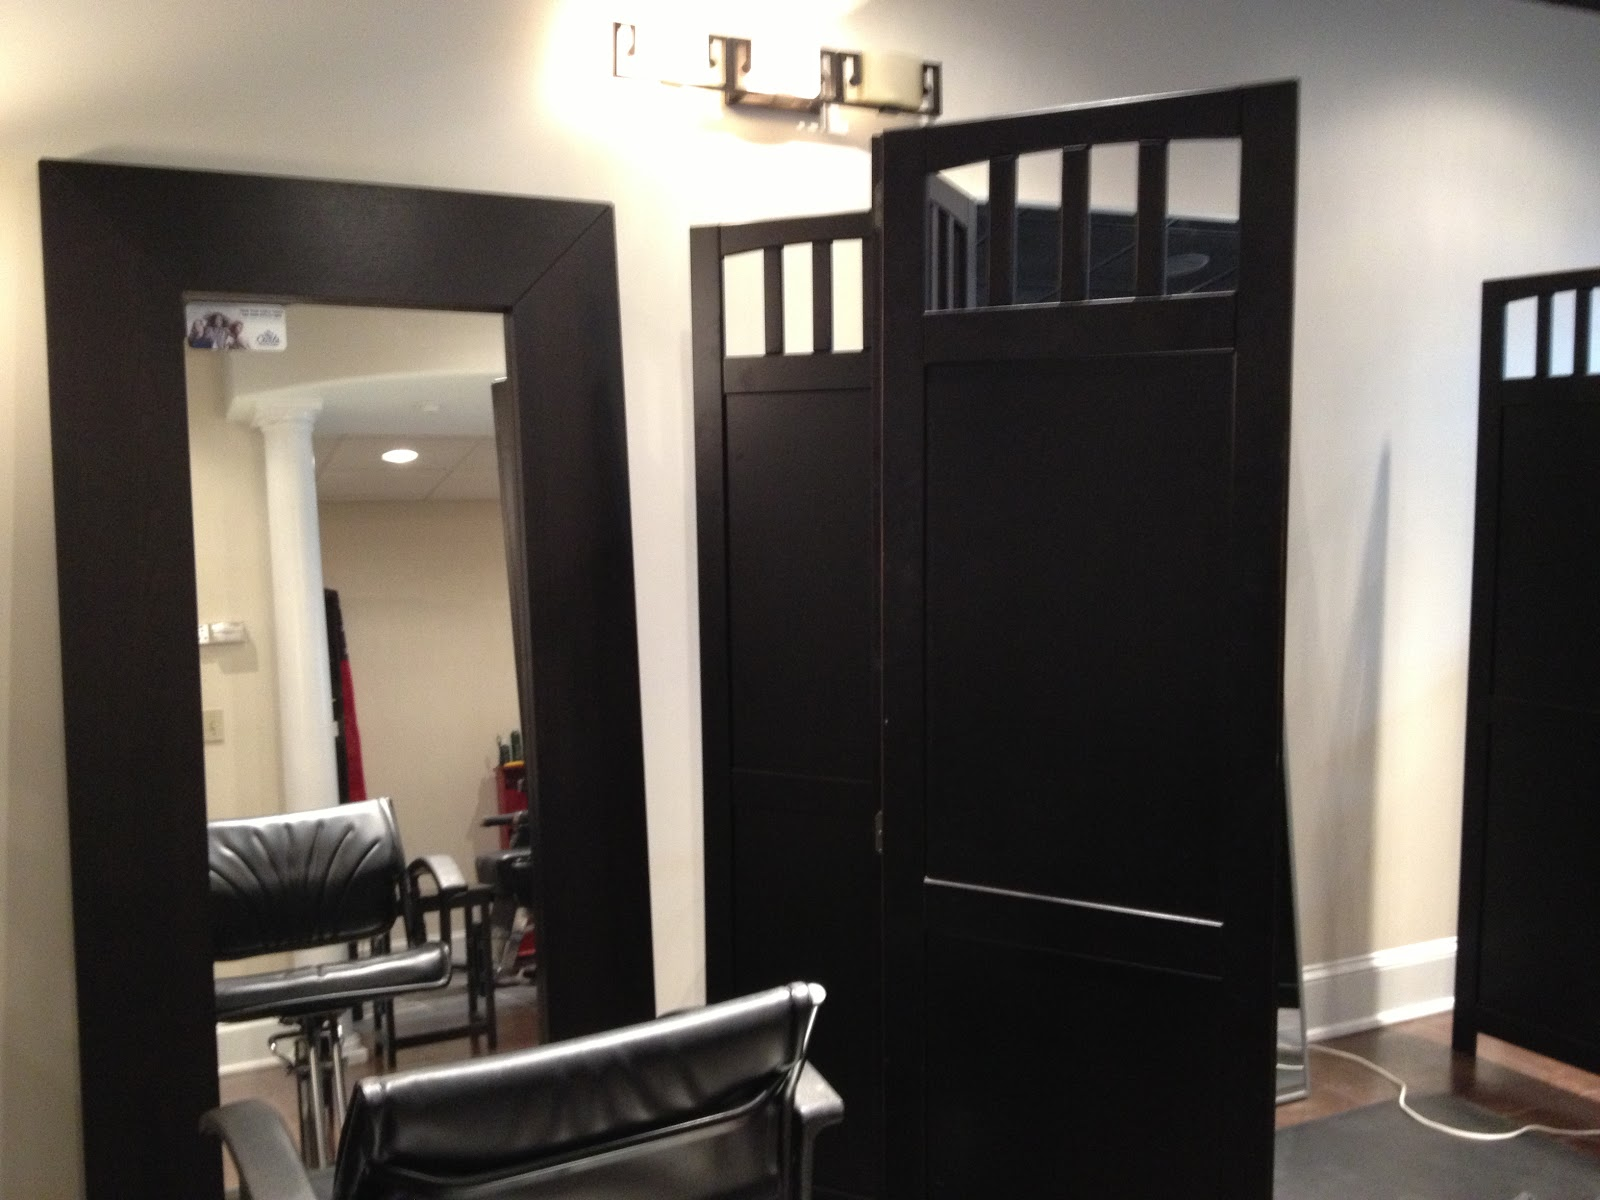 Salon Station Ideas Stations in the man cave!